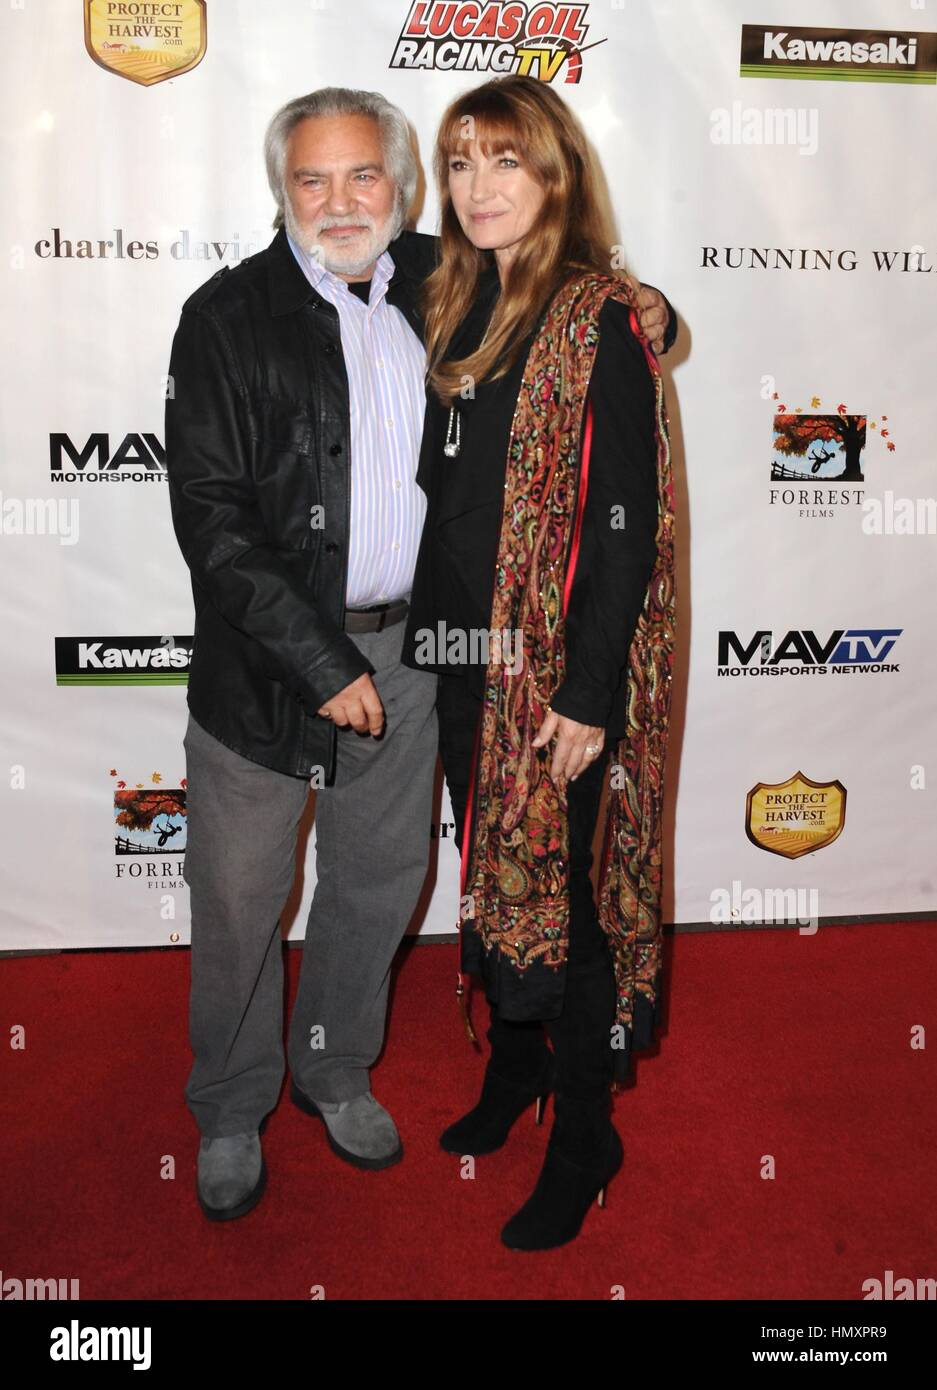 Hollywood, CA. 6th Feb, 2017. Jane Seymour, David Green at arrivals for RUNNING WILD Premiere, TCL Chinese Theatre, - Stock Image